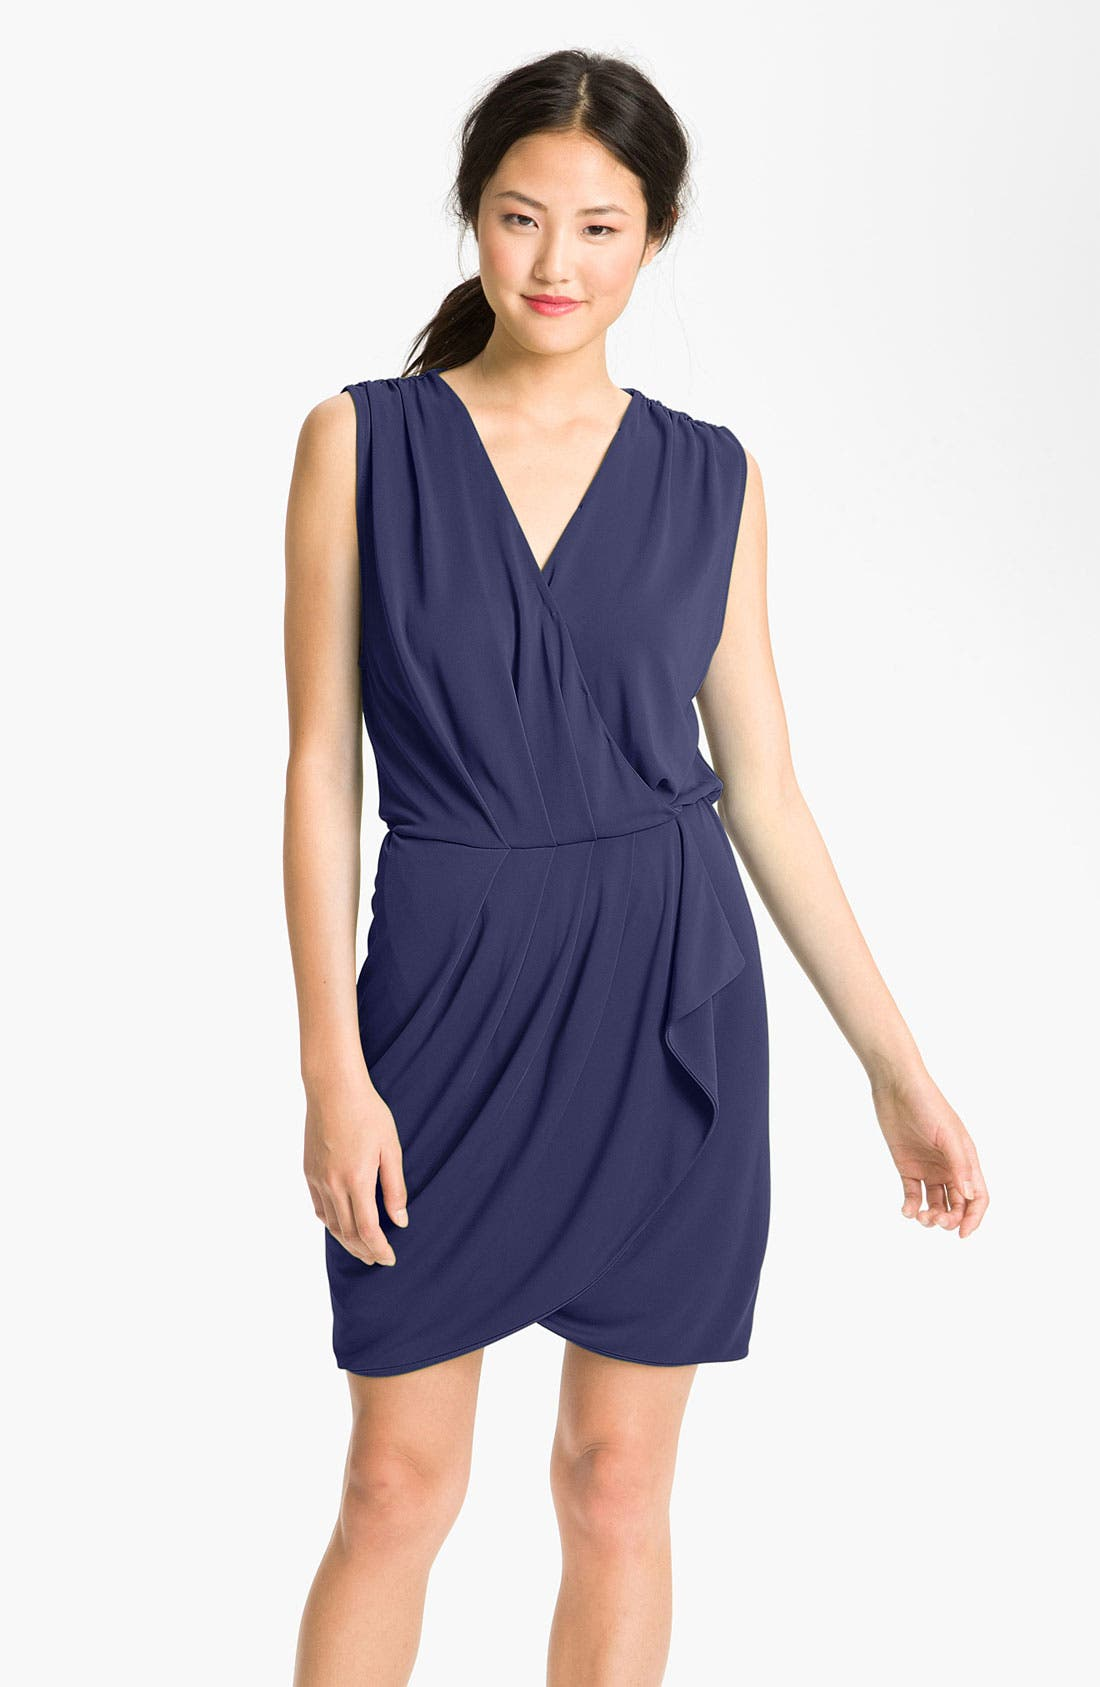 Alternate Image 1 Selected - Vince Camuto Faux Wrap Dress